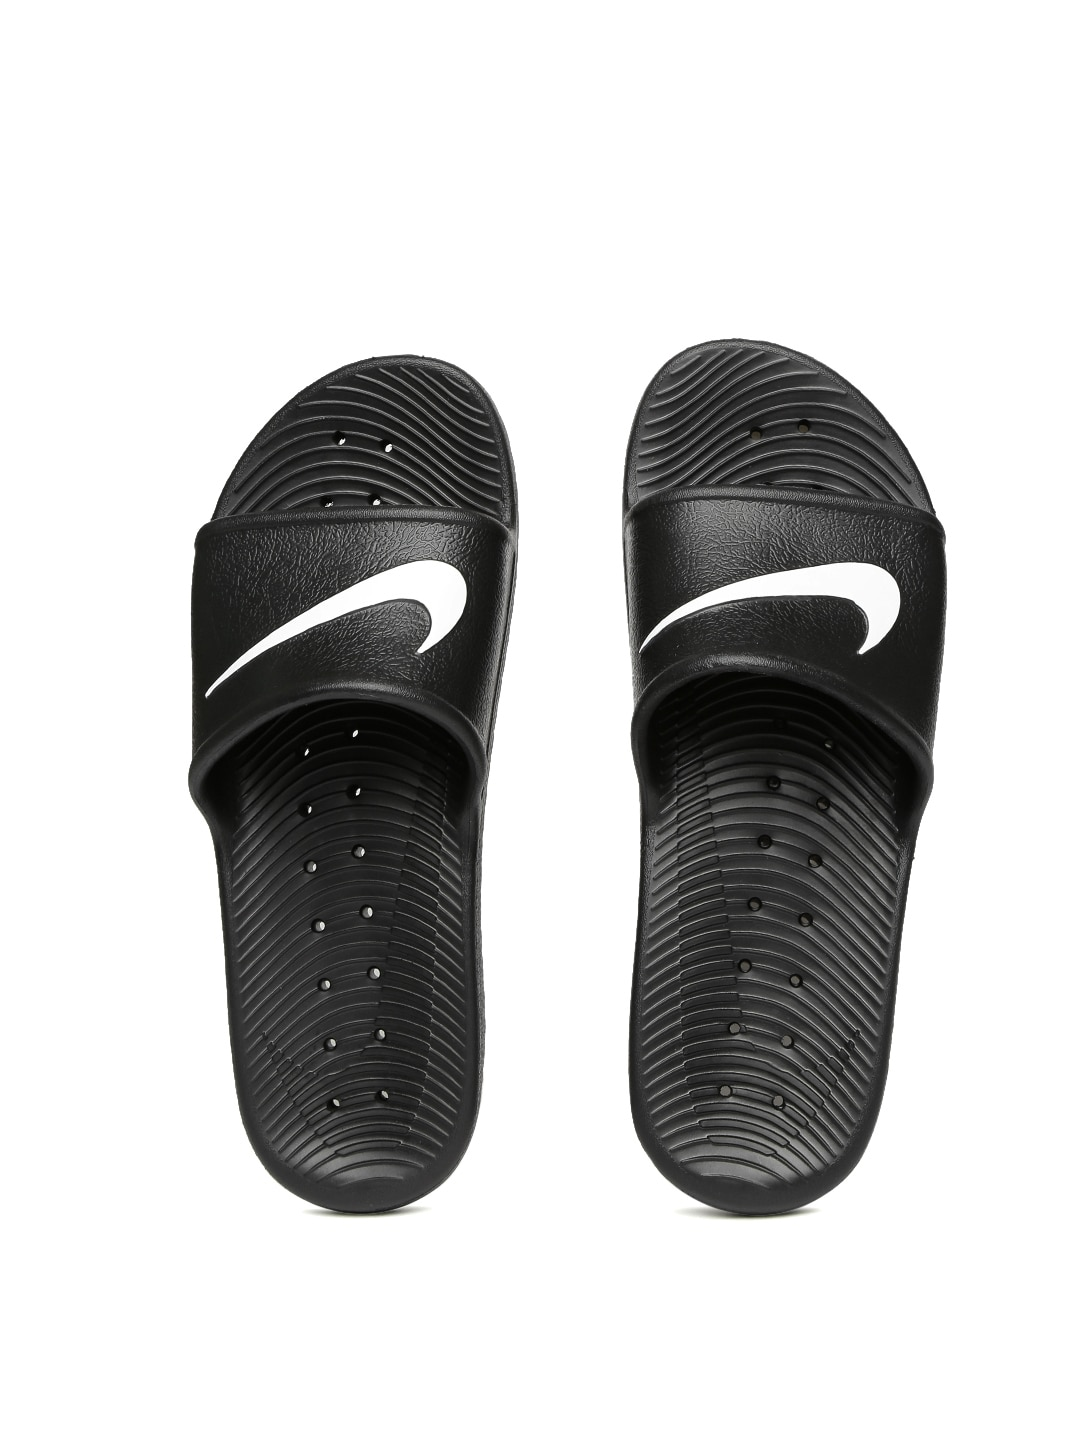 83366a420f29 Nike Men Black Flip Flops - Buy Nike Men Black Flip Flops online in India